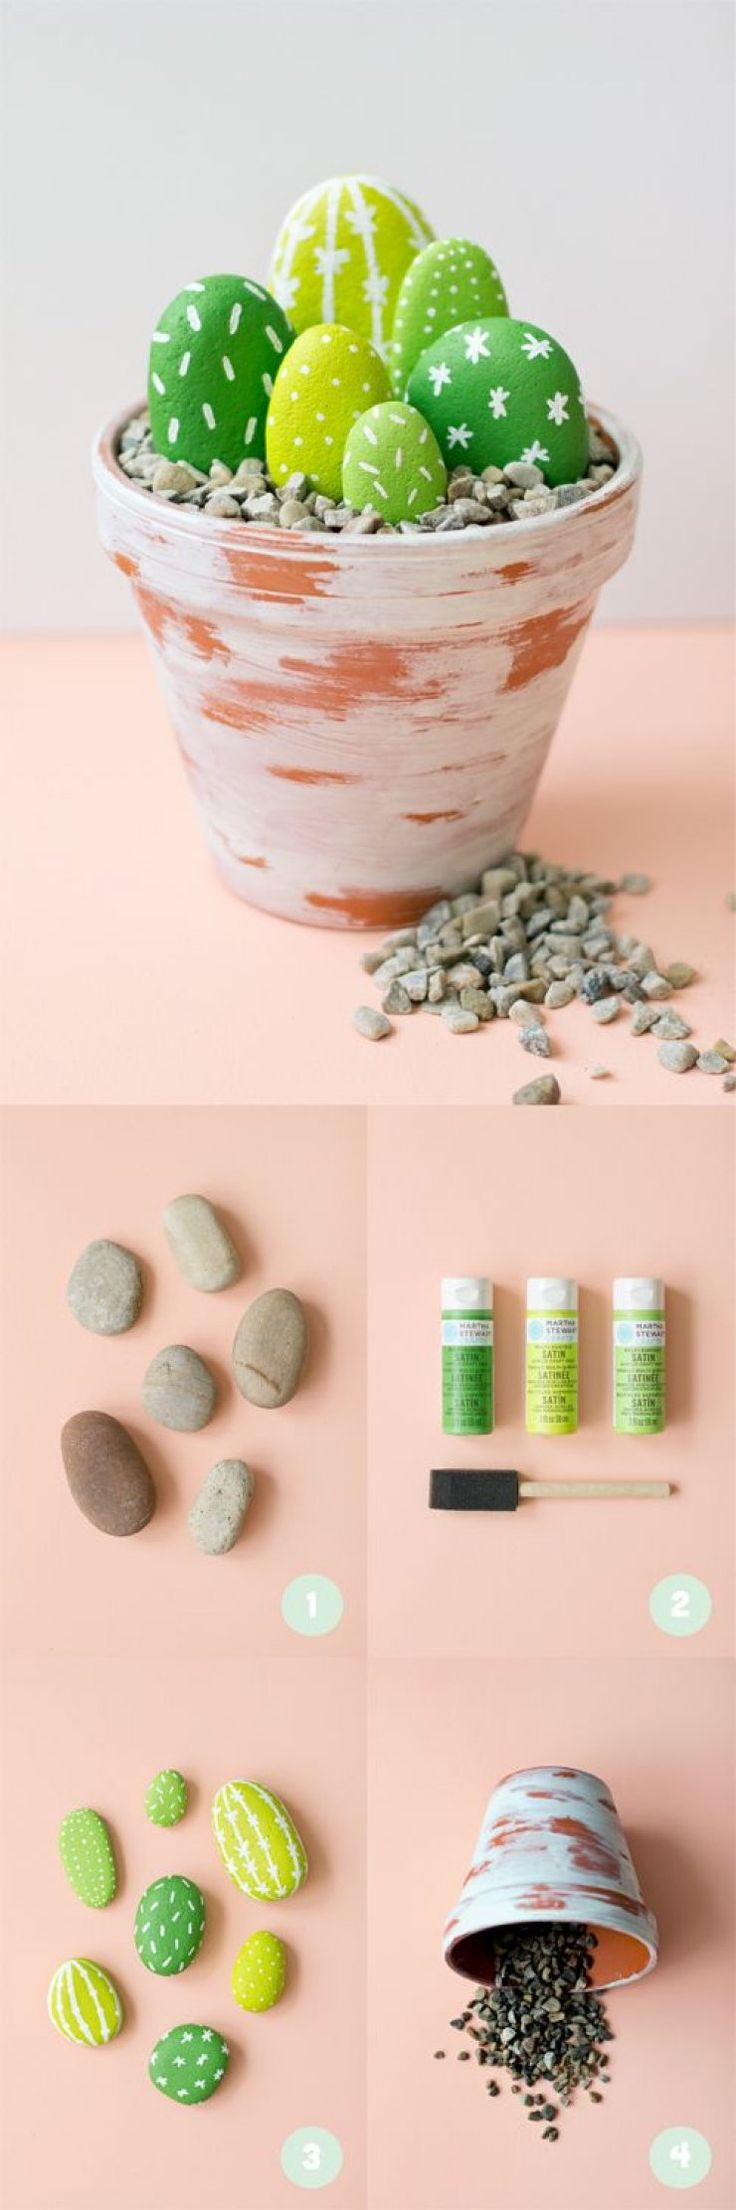 ~ DIY painted rock cacti ~